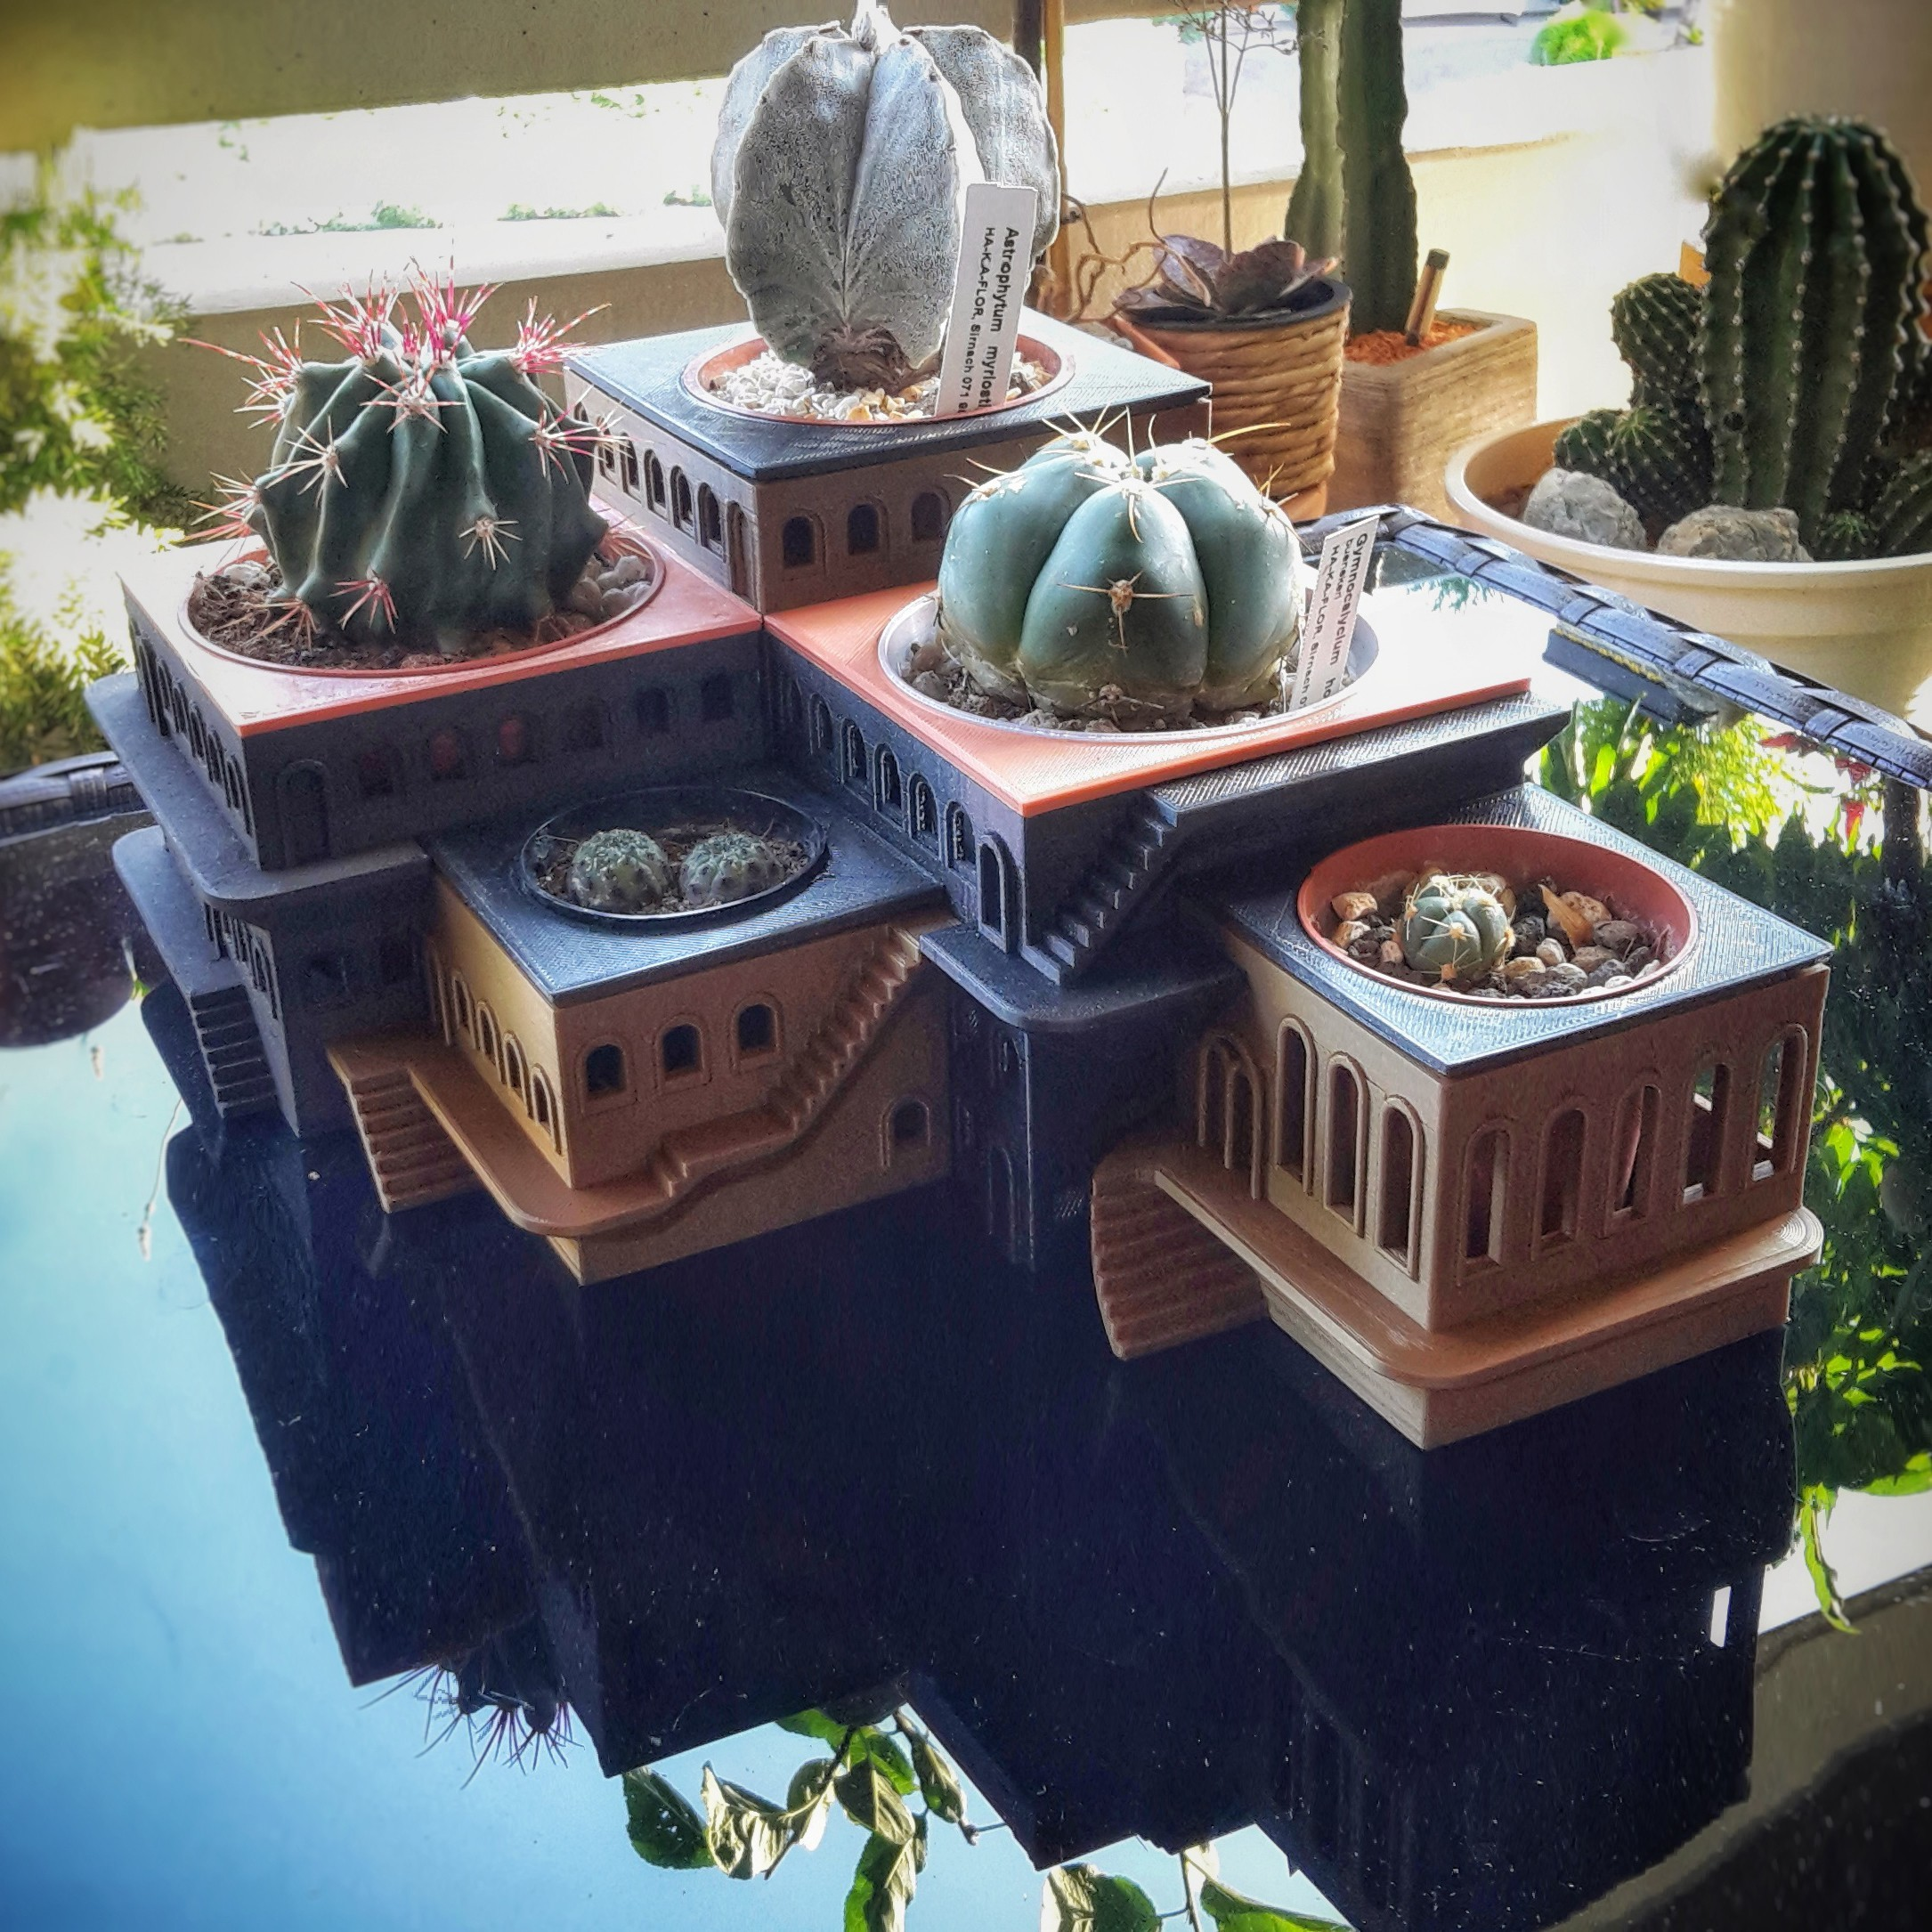 20180717_183105-01.jpg Download free STL file CactusHotel • Object to 3D print, XoGuSi